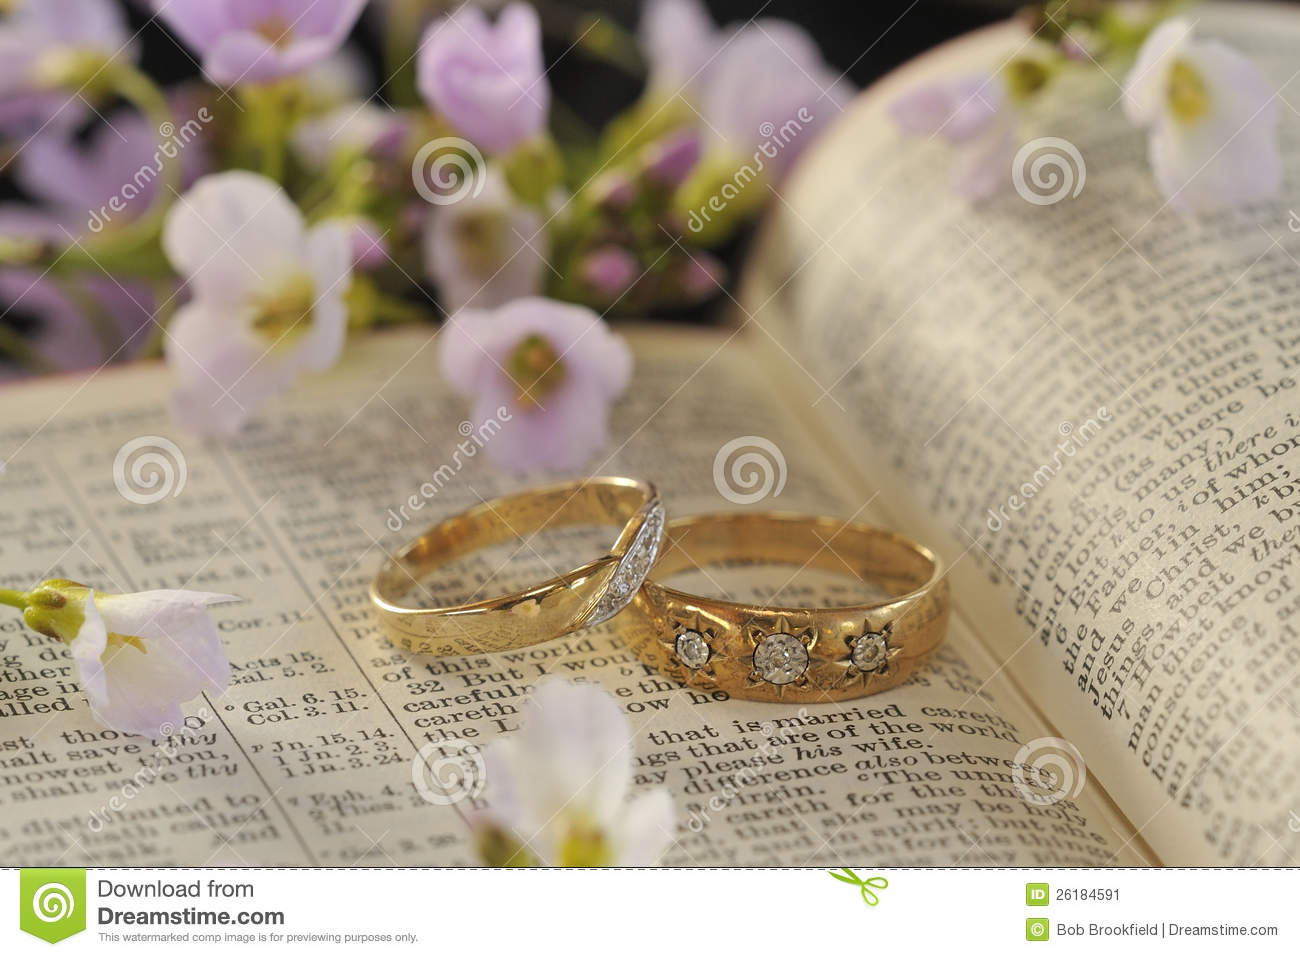 wedding natalie guidestone at scripture background wallpaper rings full jackus u retreat and hills hd in the image bible marriage